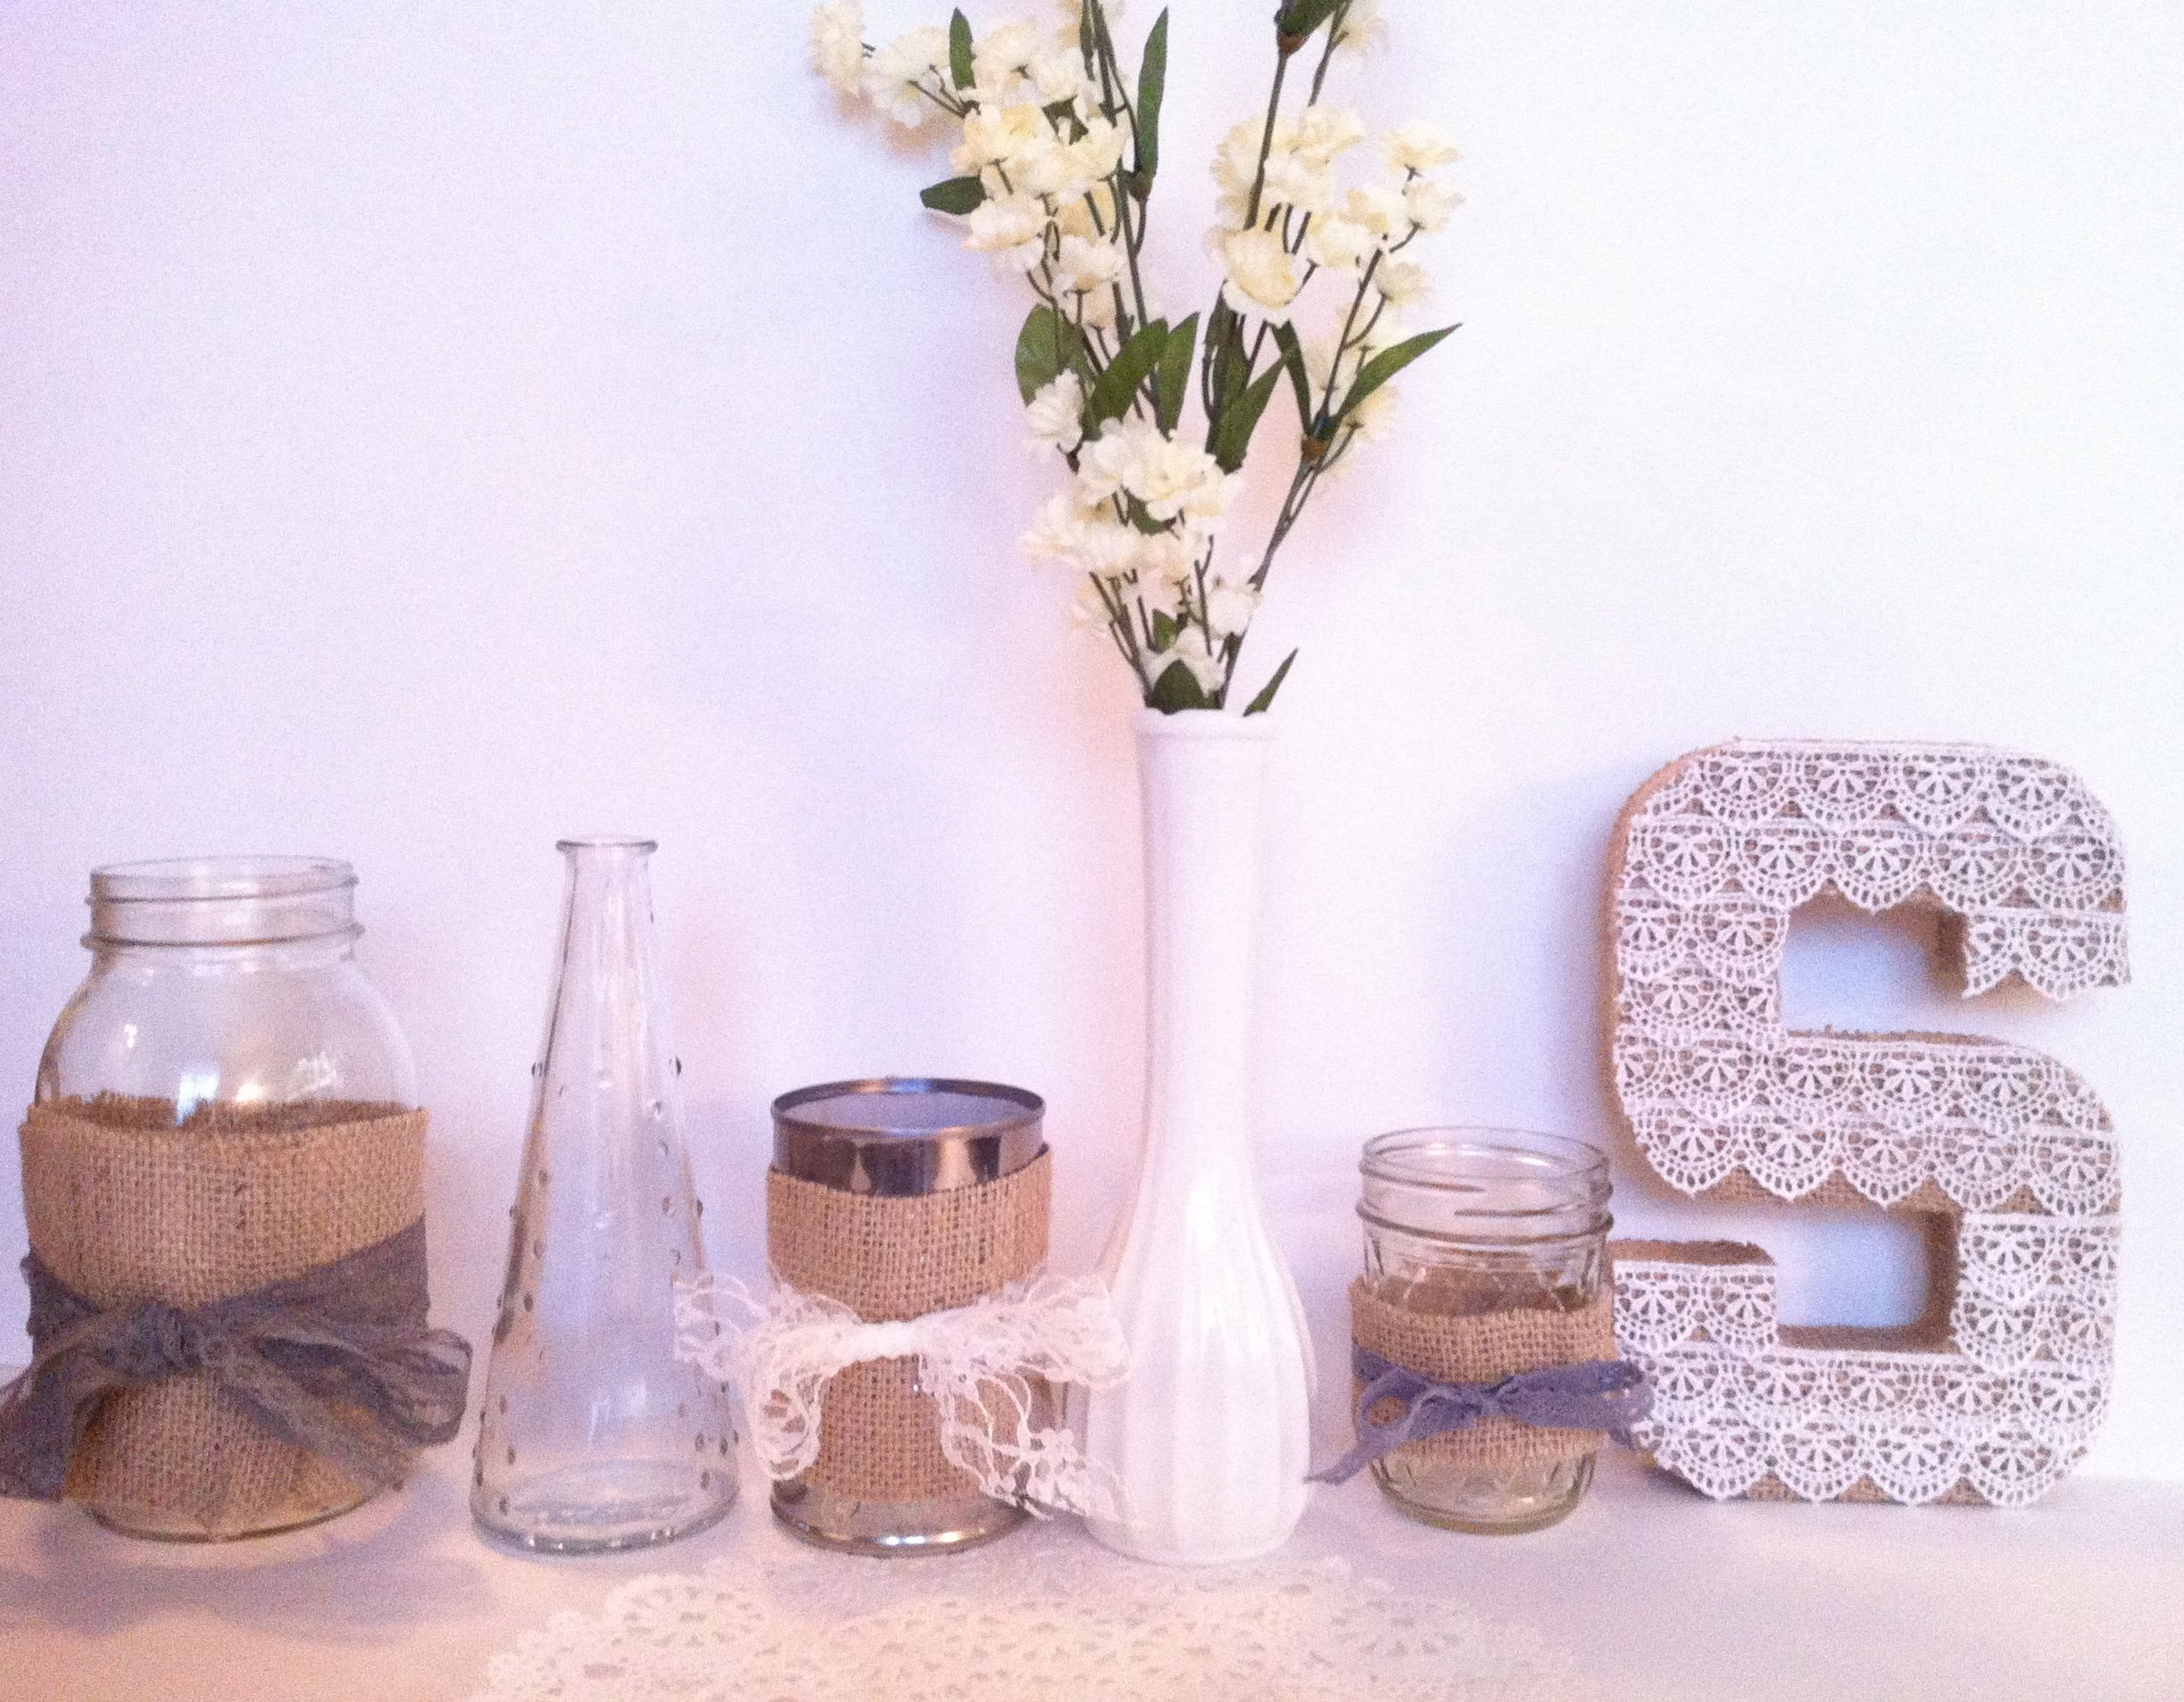 for the tables:  (1) large mason jar, 4.00  (2) ikea dotted clear vase, .79  (3) tin can, free  (4) milk glass, borrowing  (5) little mason jar, case of 12 for 8.00  (6) burlap and lace letters (for gift table?), i can make them for free, S/W or LOVE, etc.